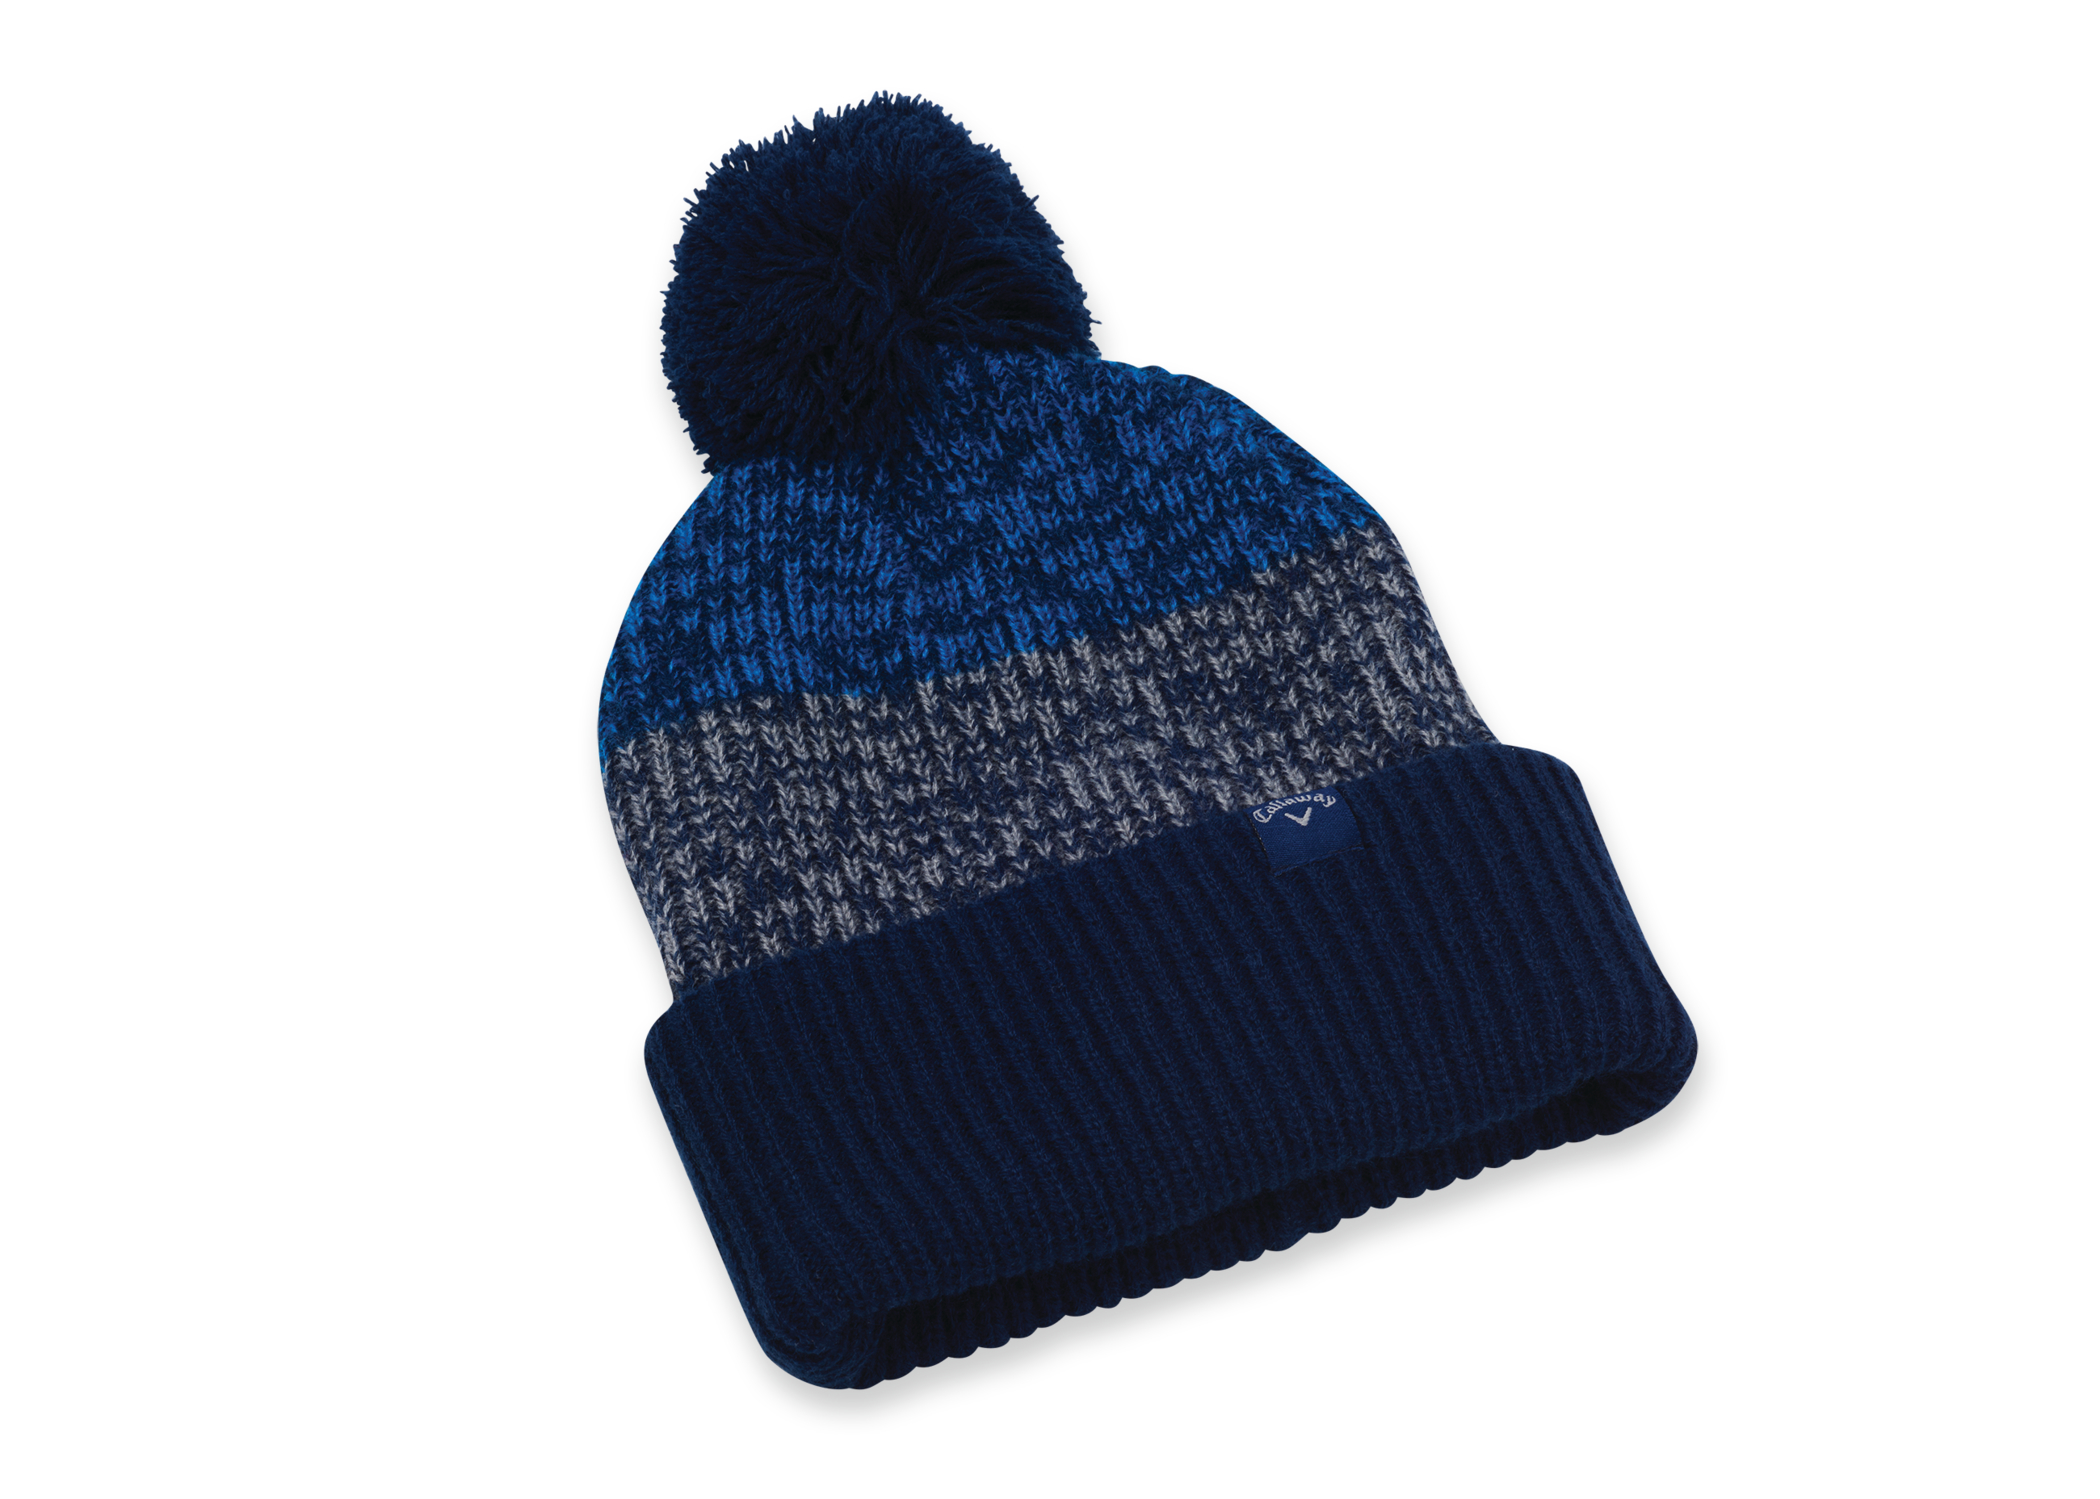 Details about New Callaway Golf Pom Pom Beanie Hat Cap - Navy Charcoal fcd9474d43f2